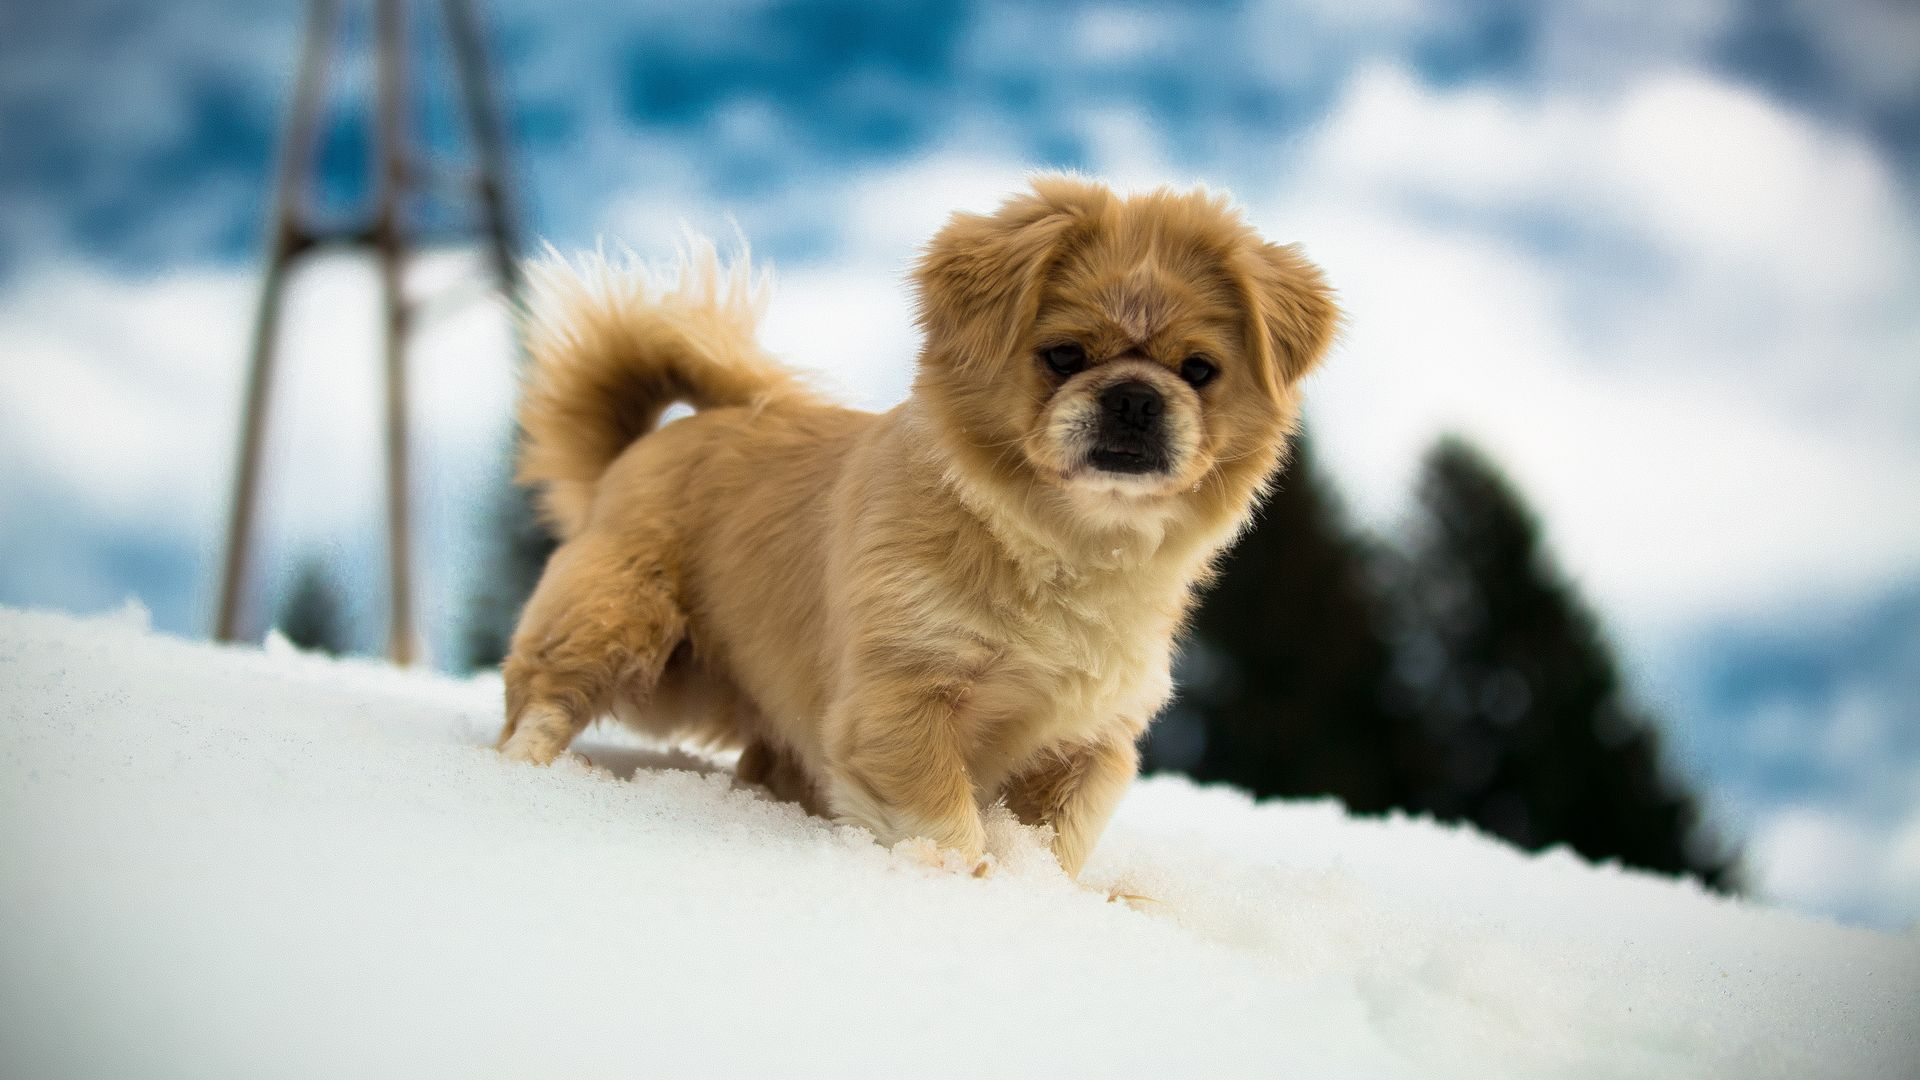 Little Puppy in Snow Wallpaper Puppy pictures, Puppies